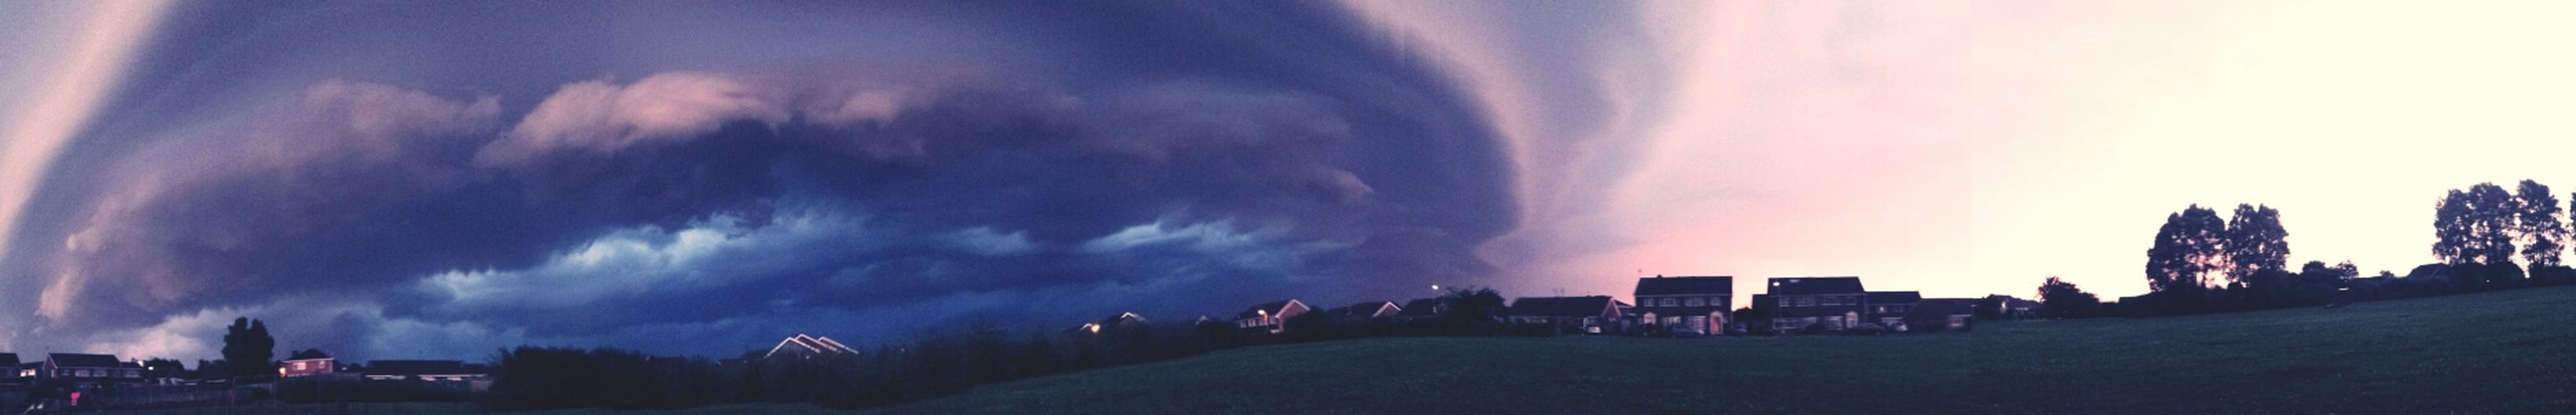 Sunset Silhouettes Storm Clouds Weatherchange First Eyeem Photo #panorama